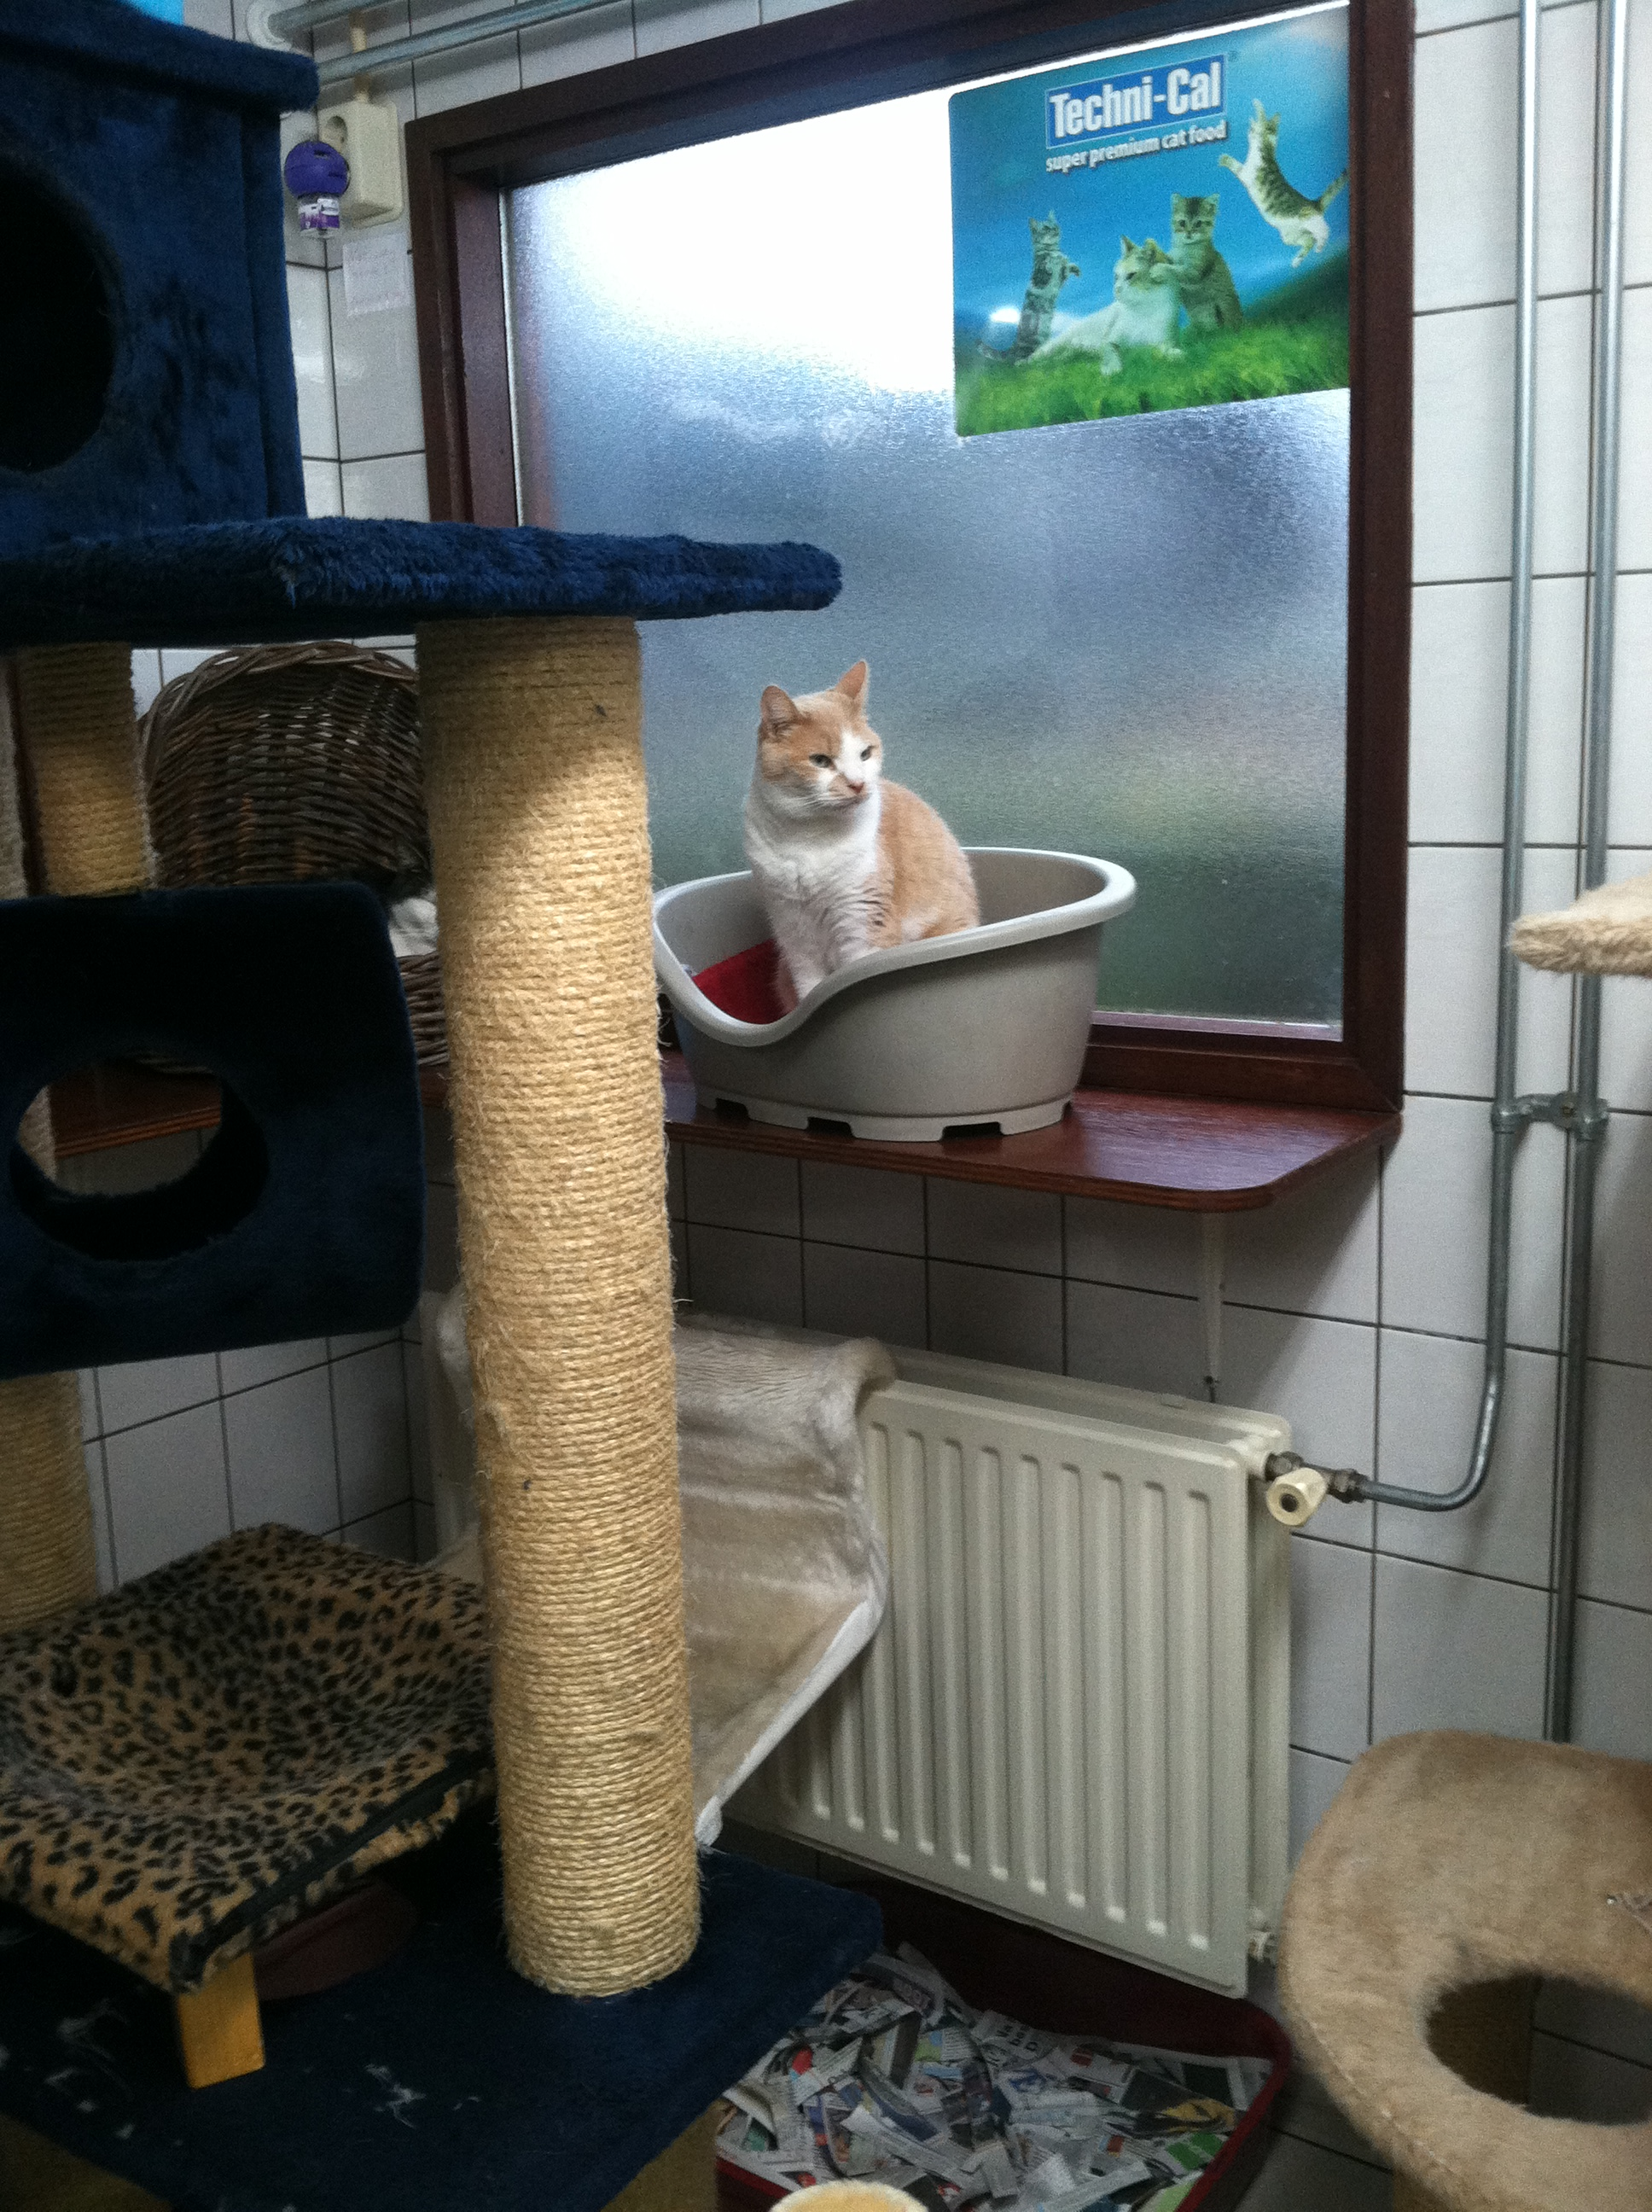 The little houseboat is stuffed with kitty beds and playthings.